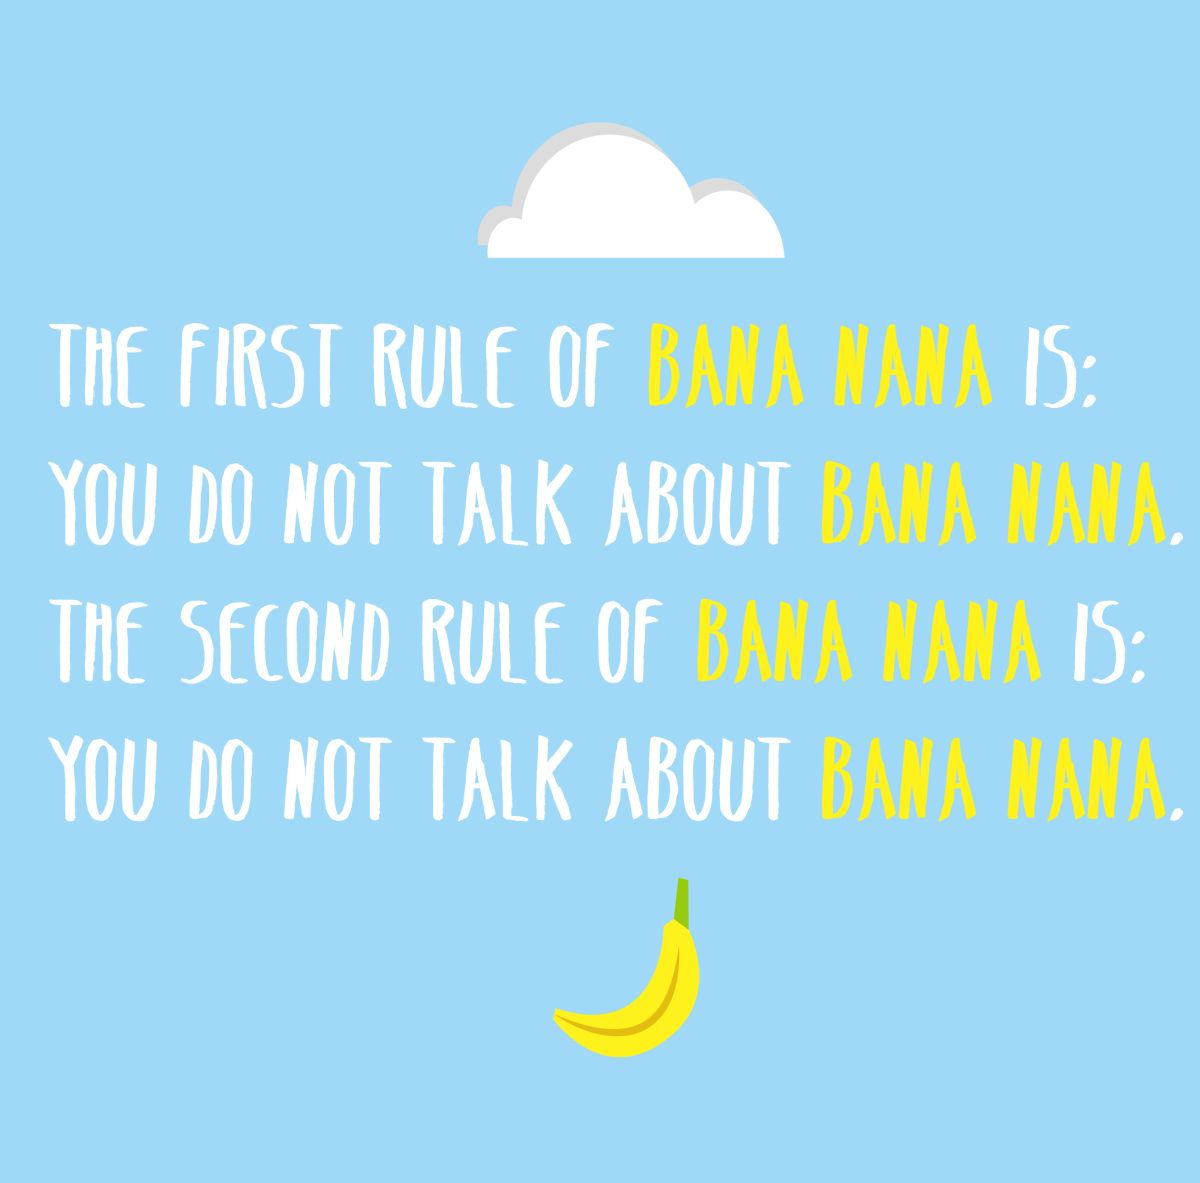 First rule..  #Quotes #BanaNana #FightClub